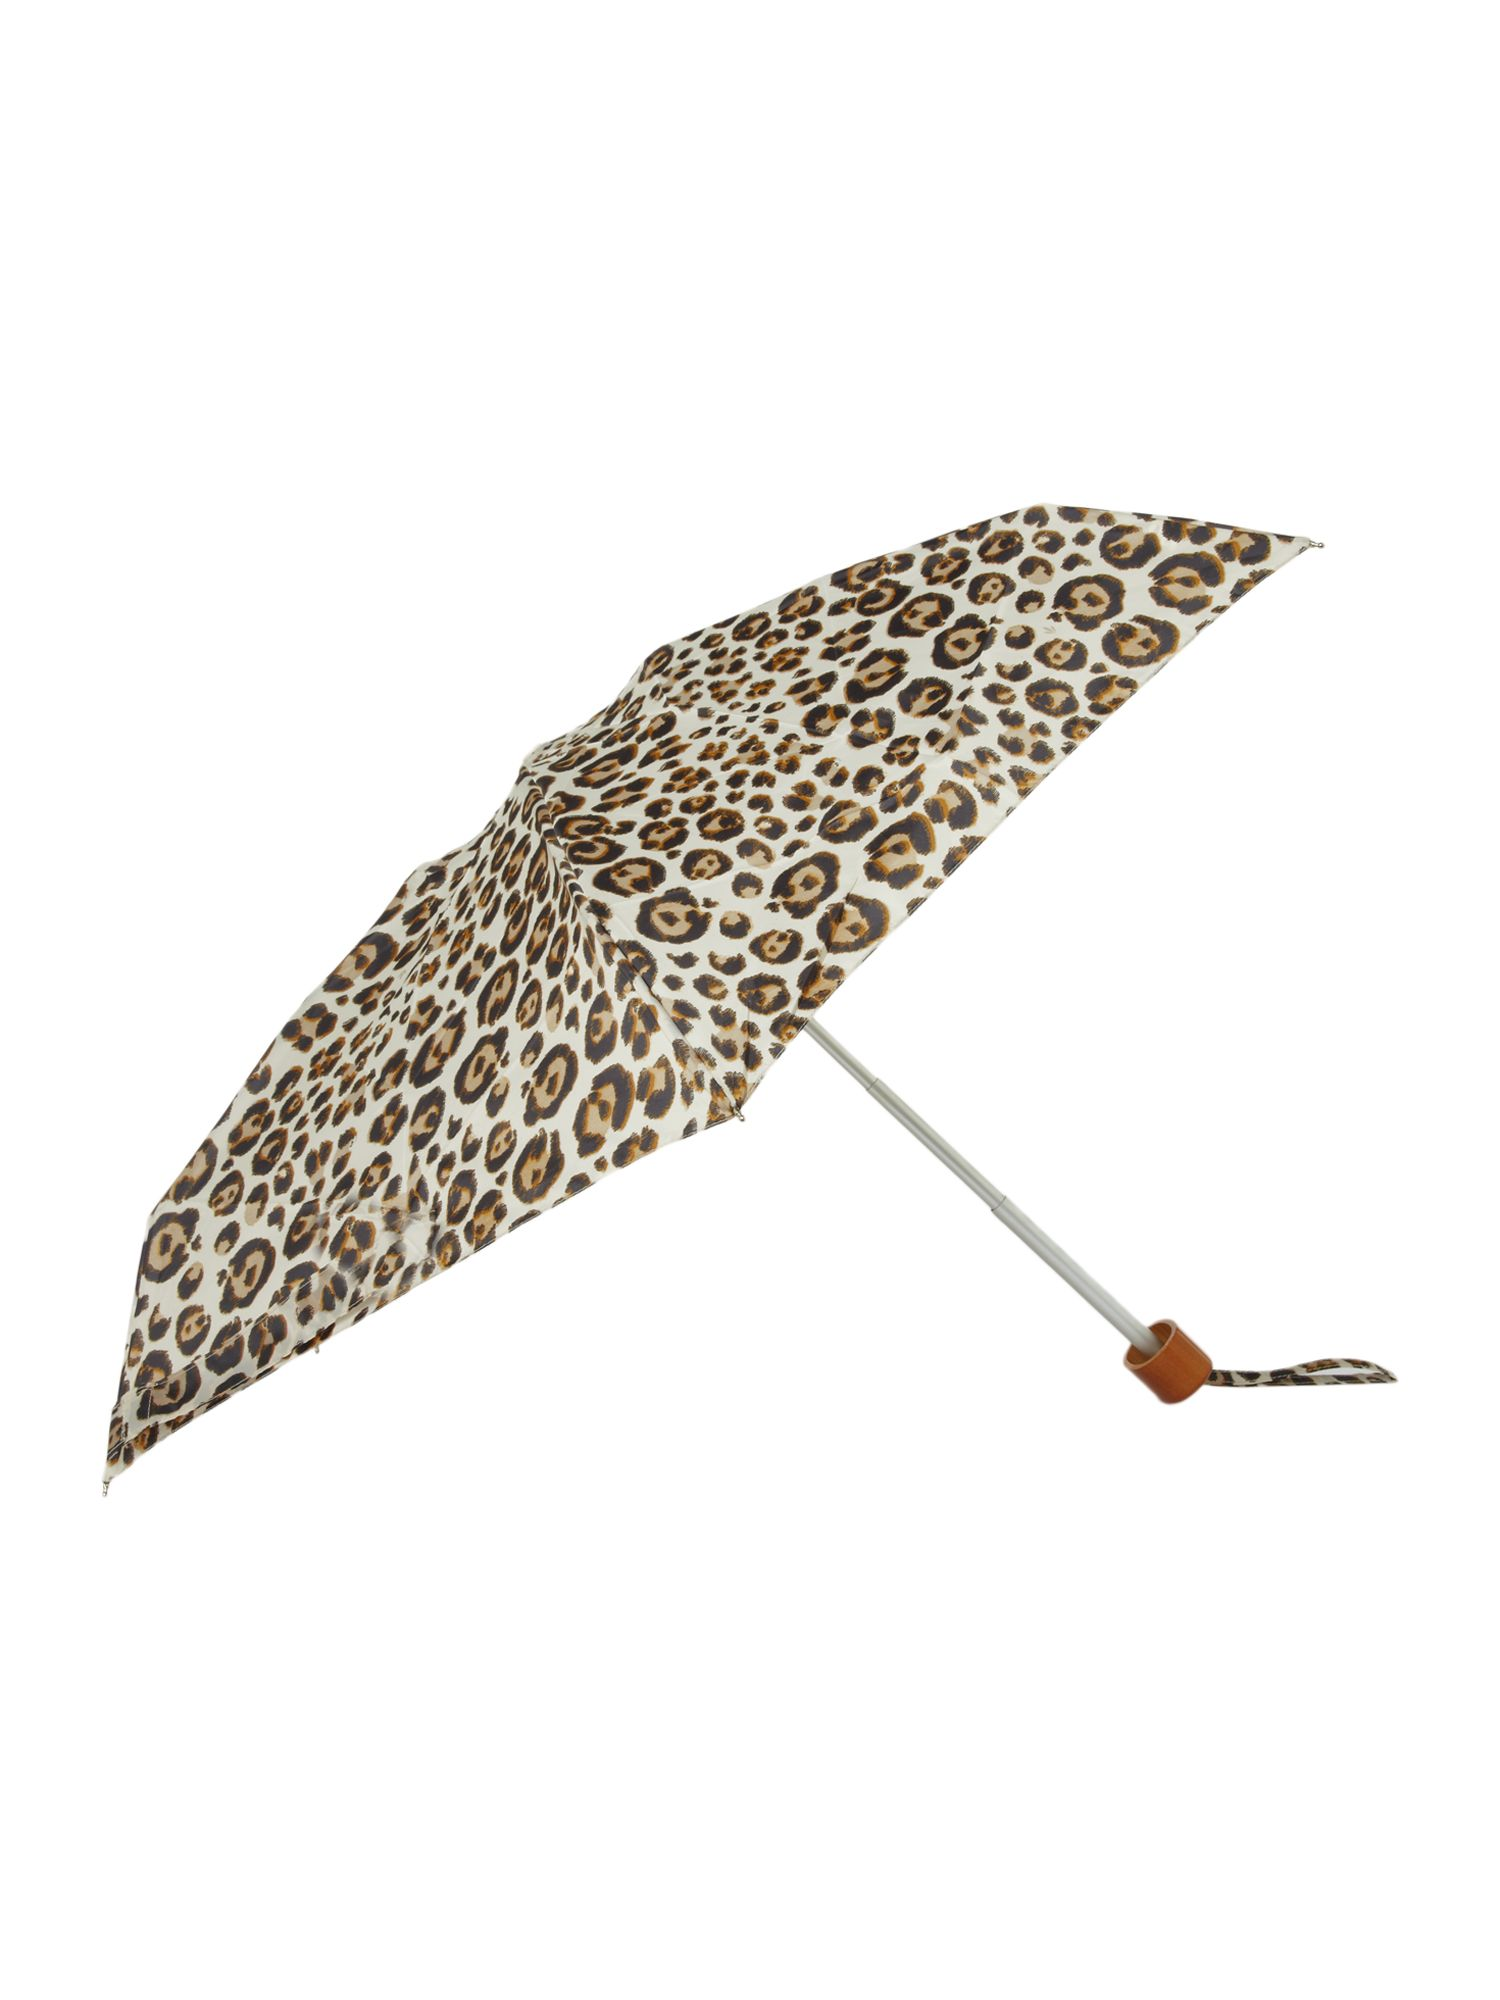 Puma print tiny umbrella